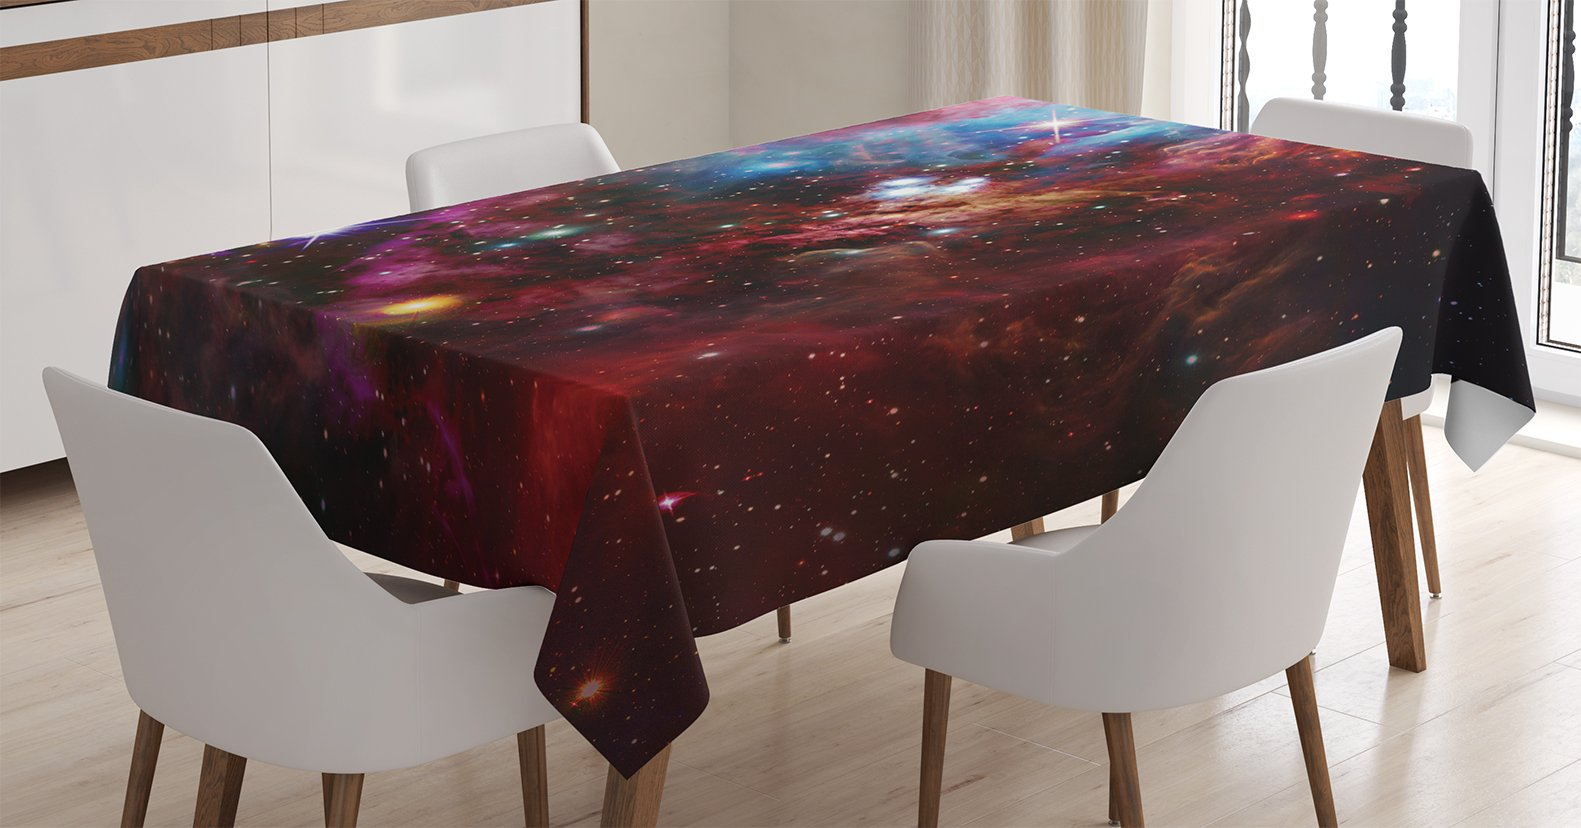 Ambesonne Space Decorations Tablecloth, Space Nebula with Star Cluster in the Cosmos Universe Galaxy Solar Celestial Zone, Rectangular Table Cover for Dining Room Kitchen, 60x84 Inches, Teal Red Pink